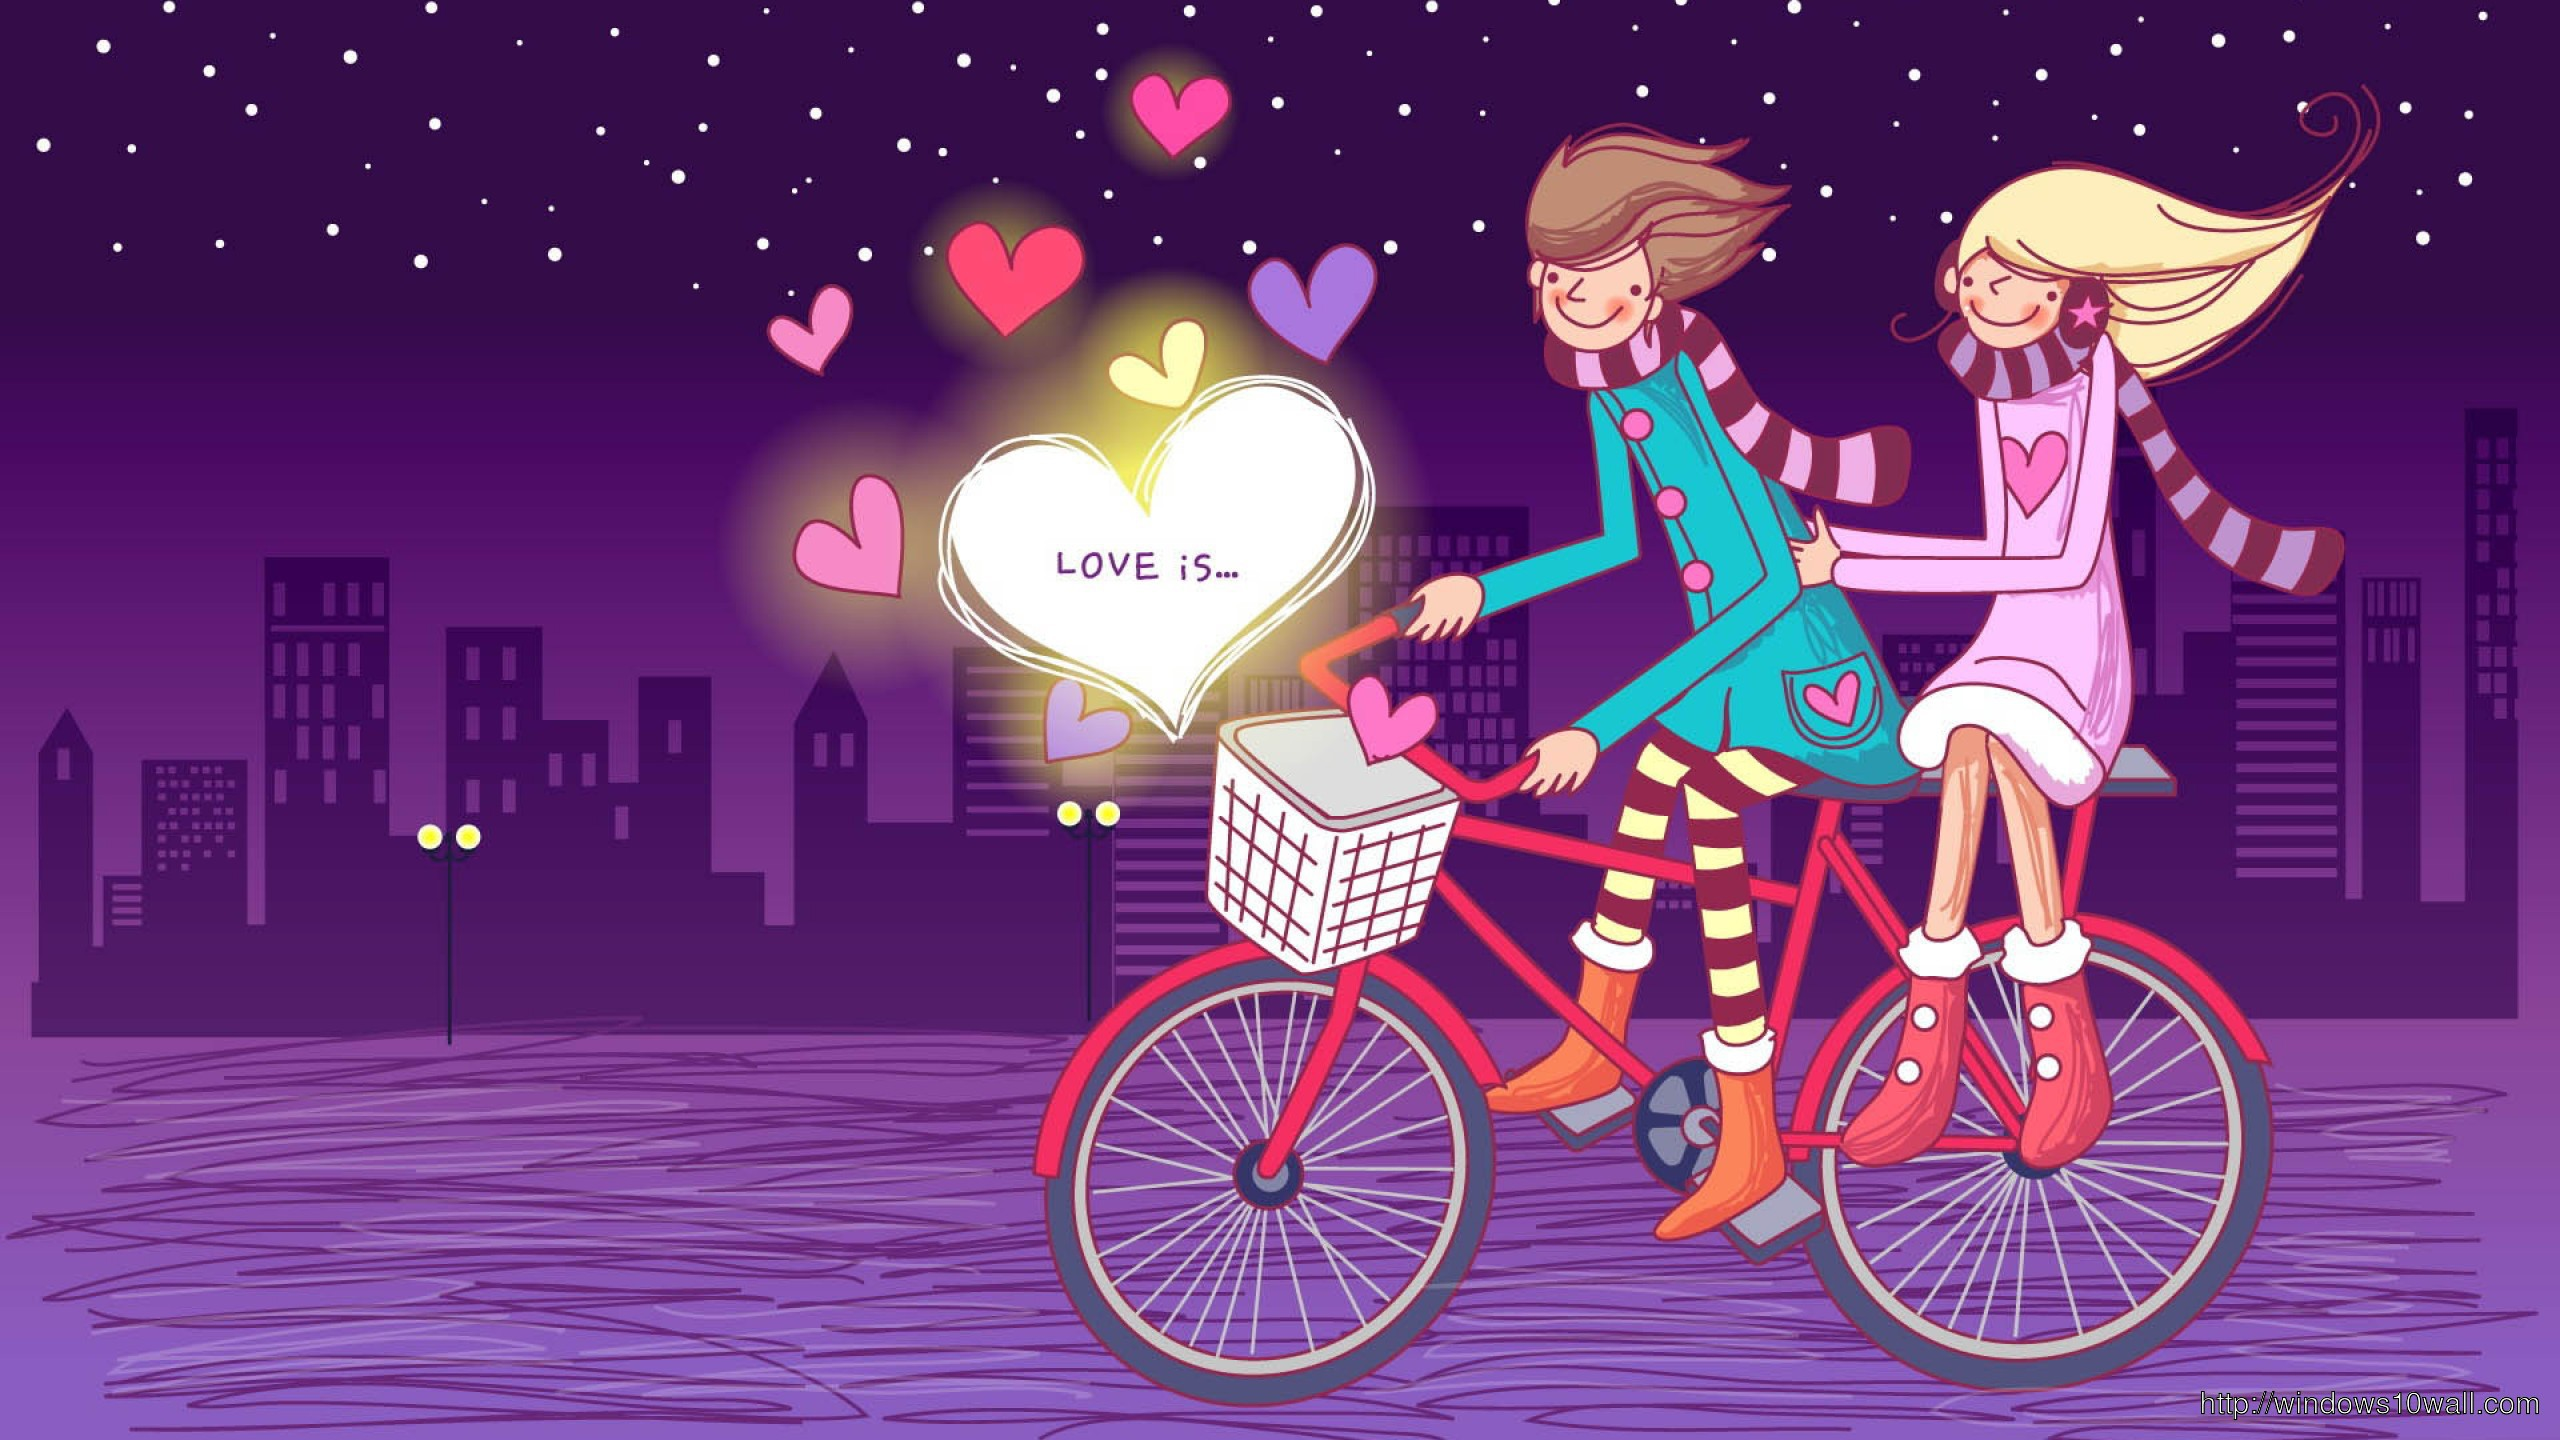 In Love Cycle Ride Wallpaper Windows 10 Wallpapers